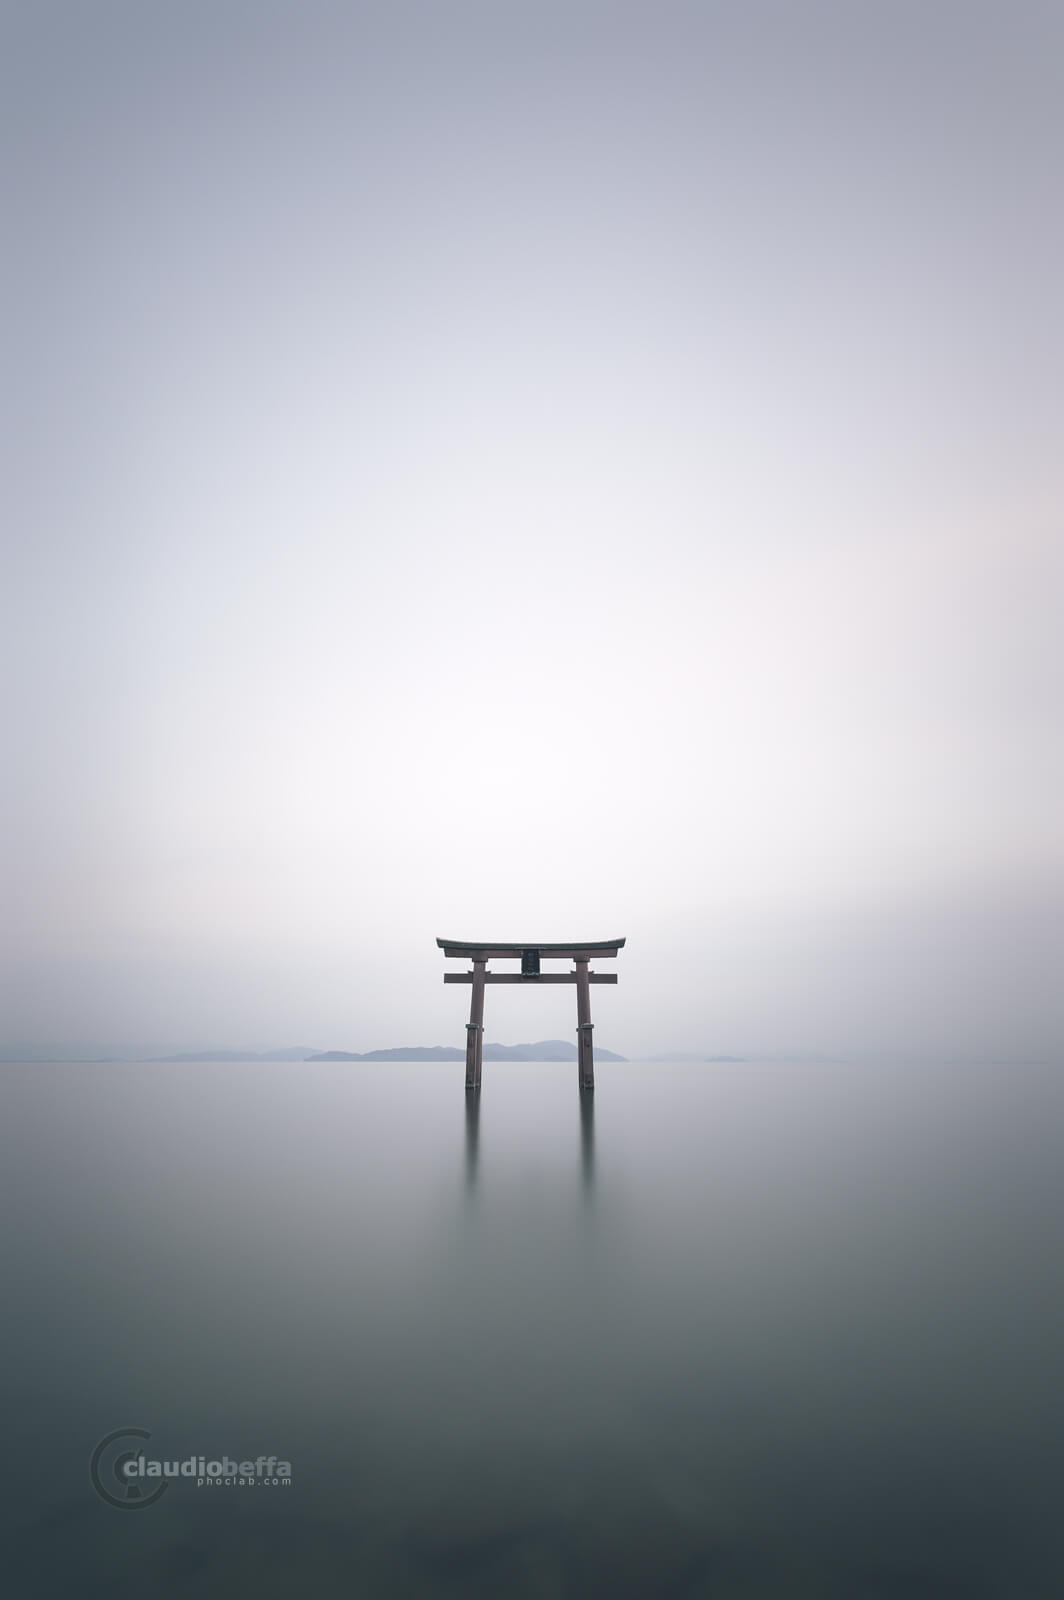 Illusion of time, Gate, Torii, Shinto, Sunset, Light, Water, Mountains, Time, Stillness, Reflections